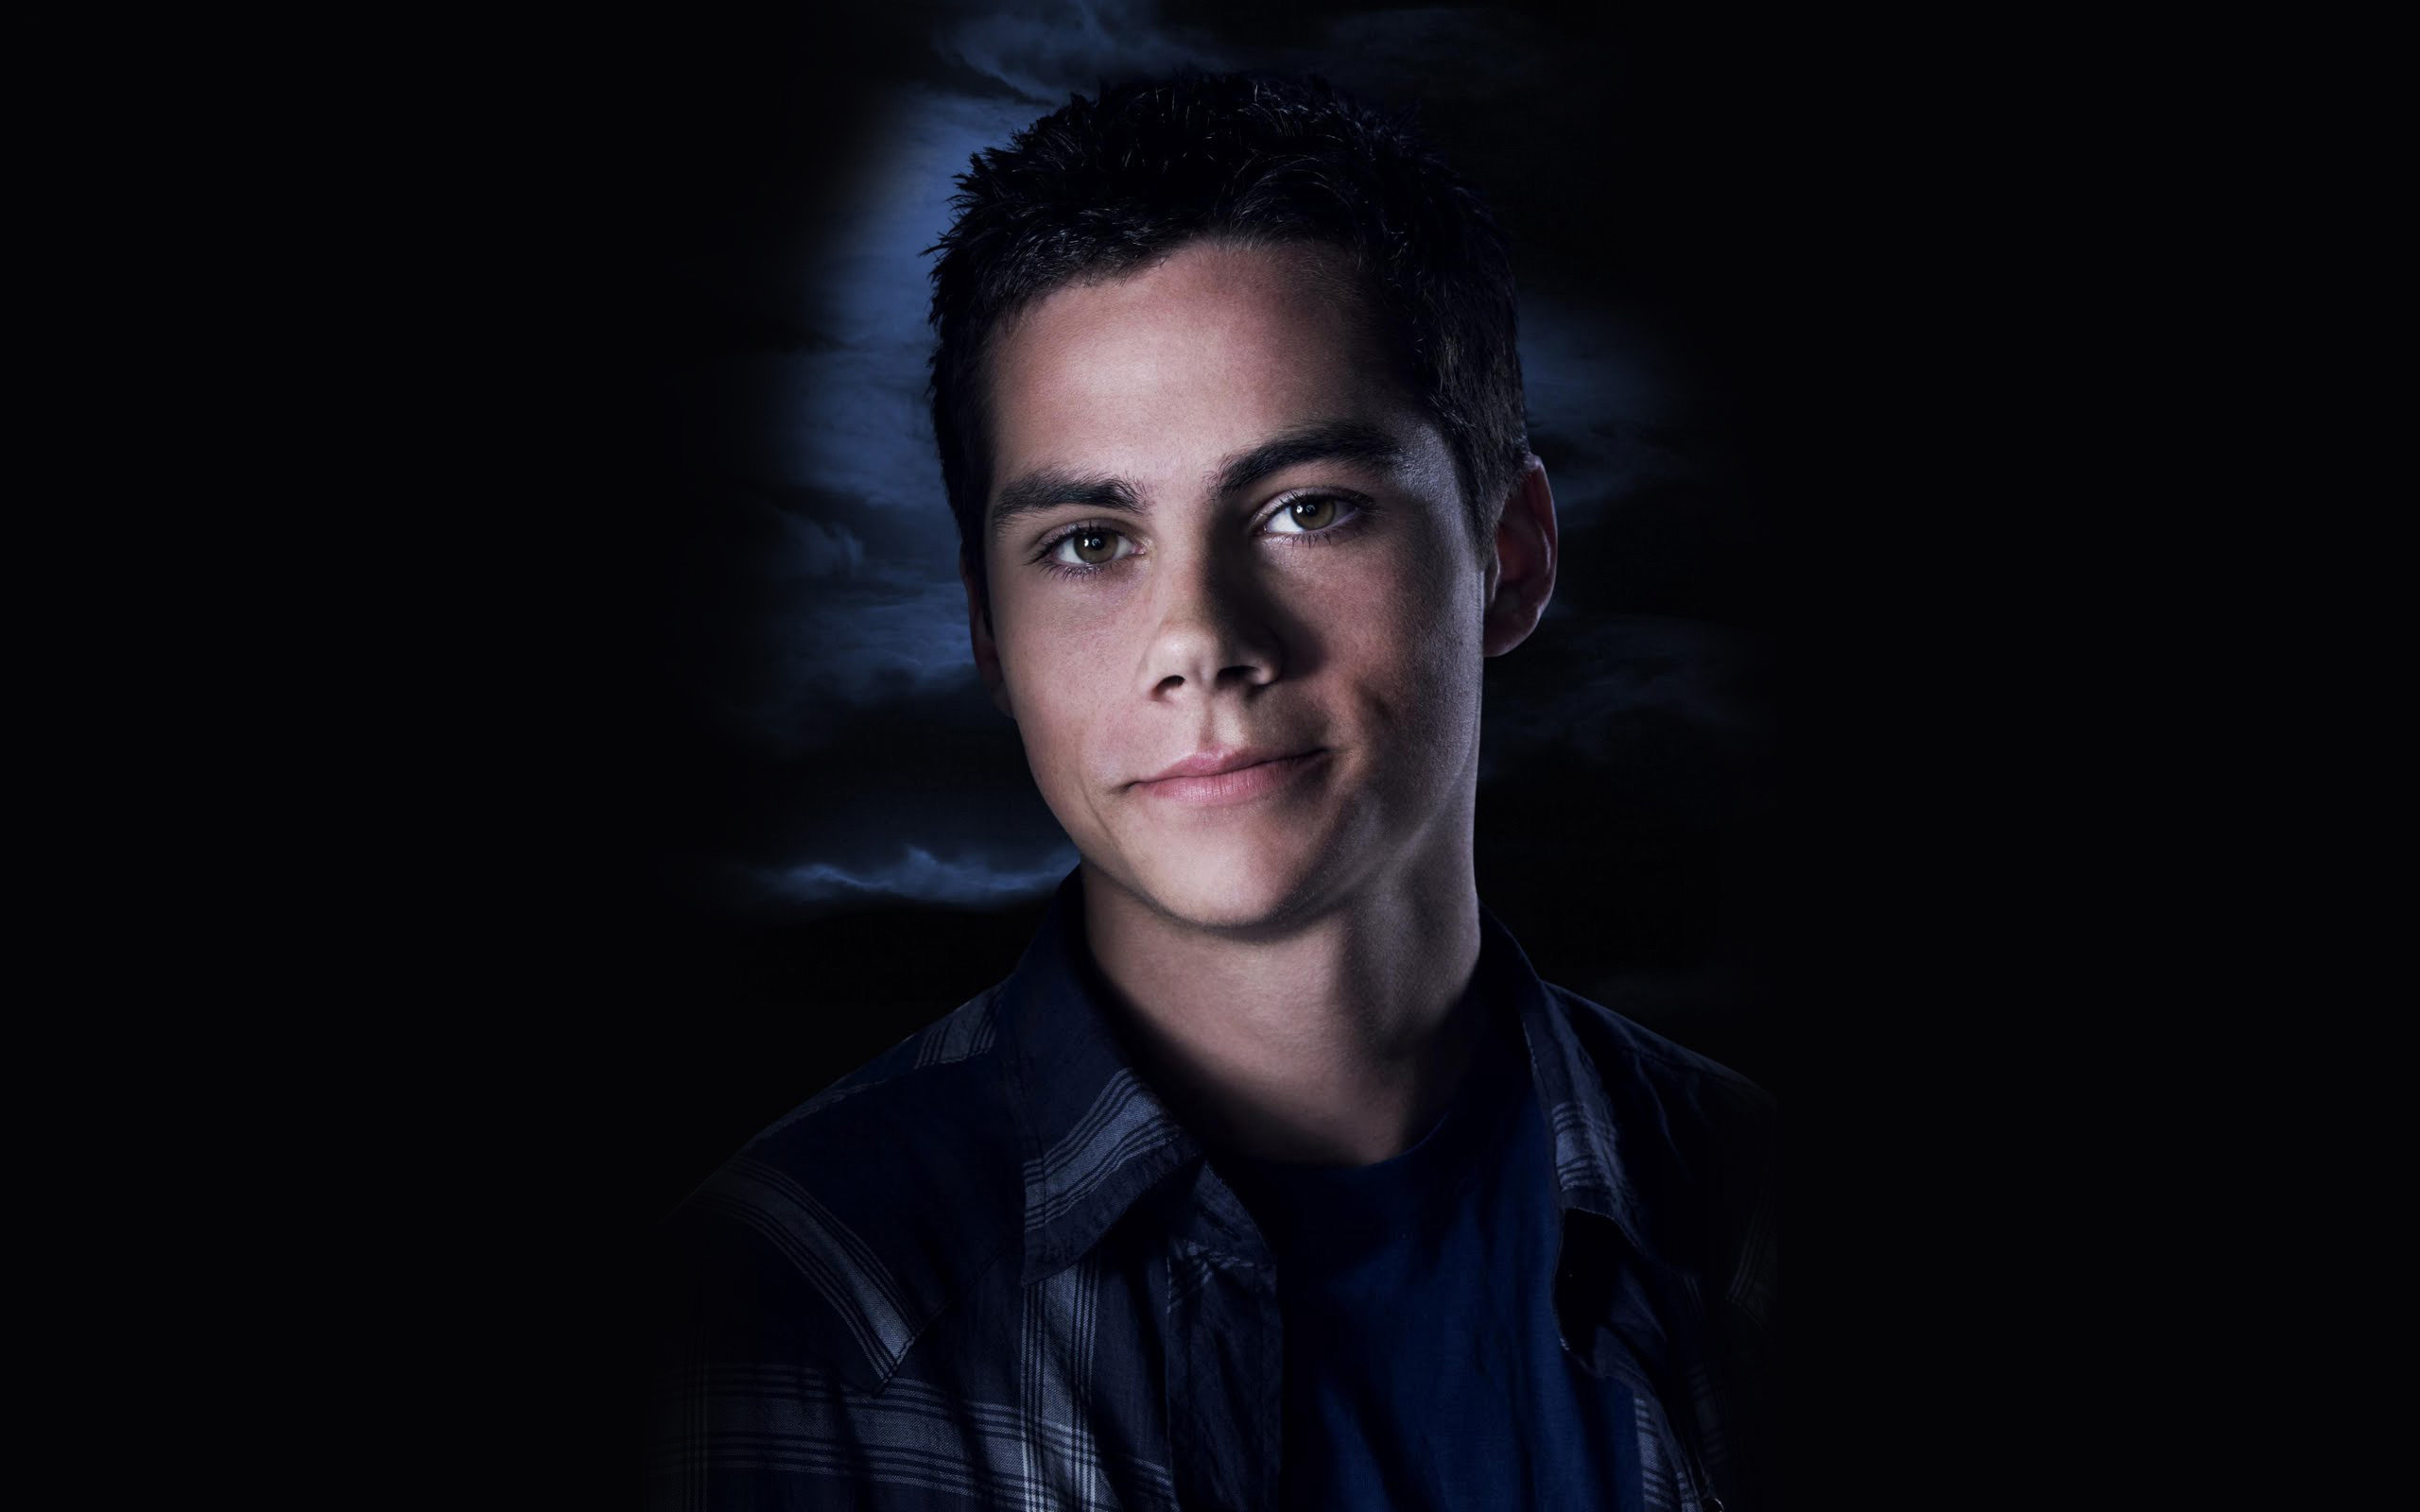 dylan o brien actor wallpaper background 55919